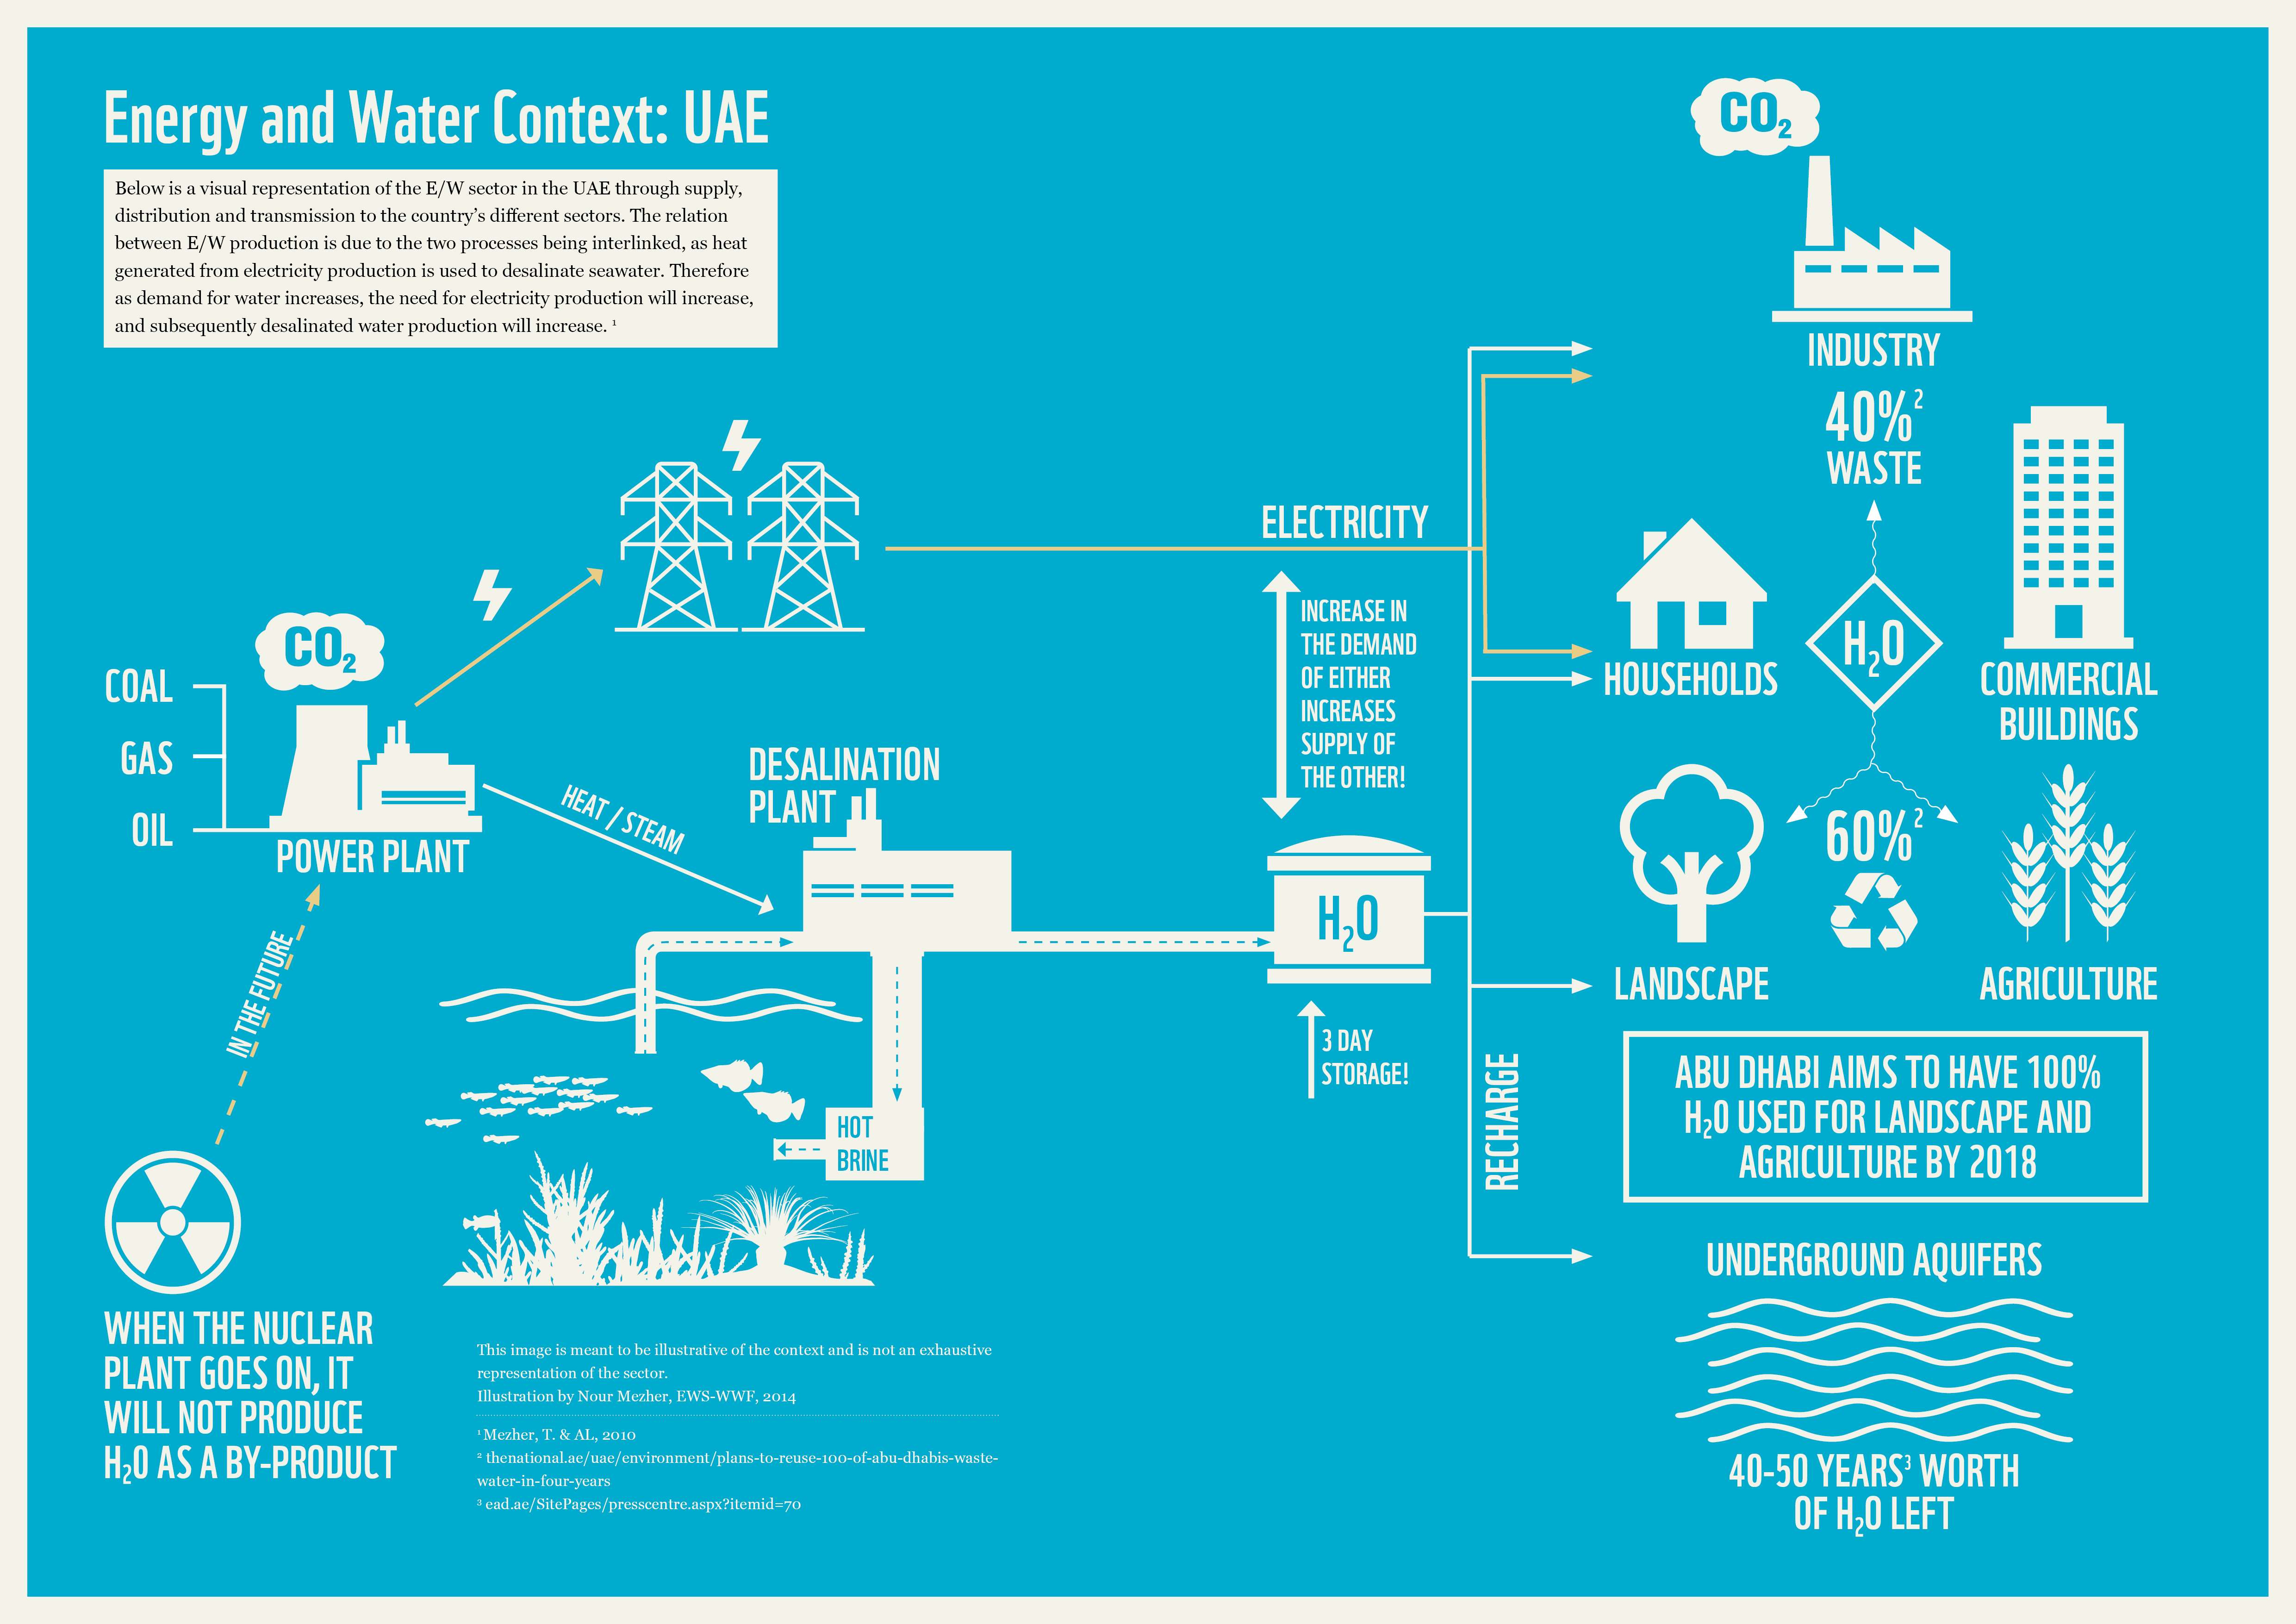 The energy and water context UAE infographic